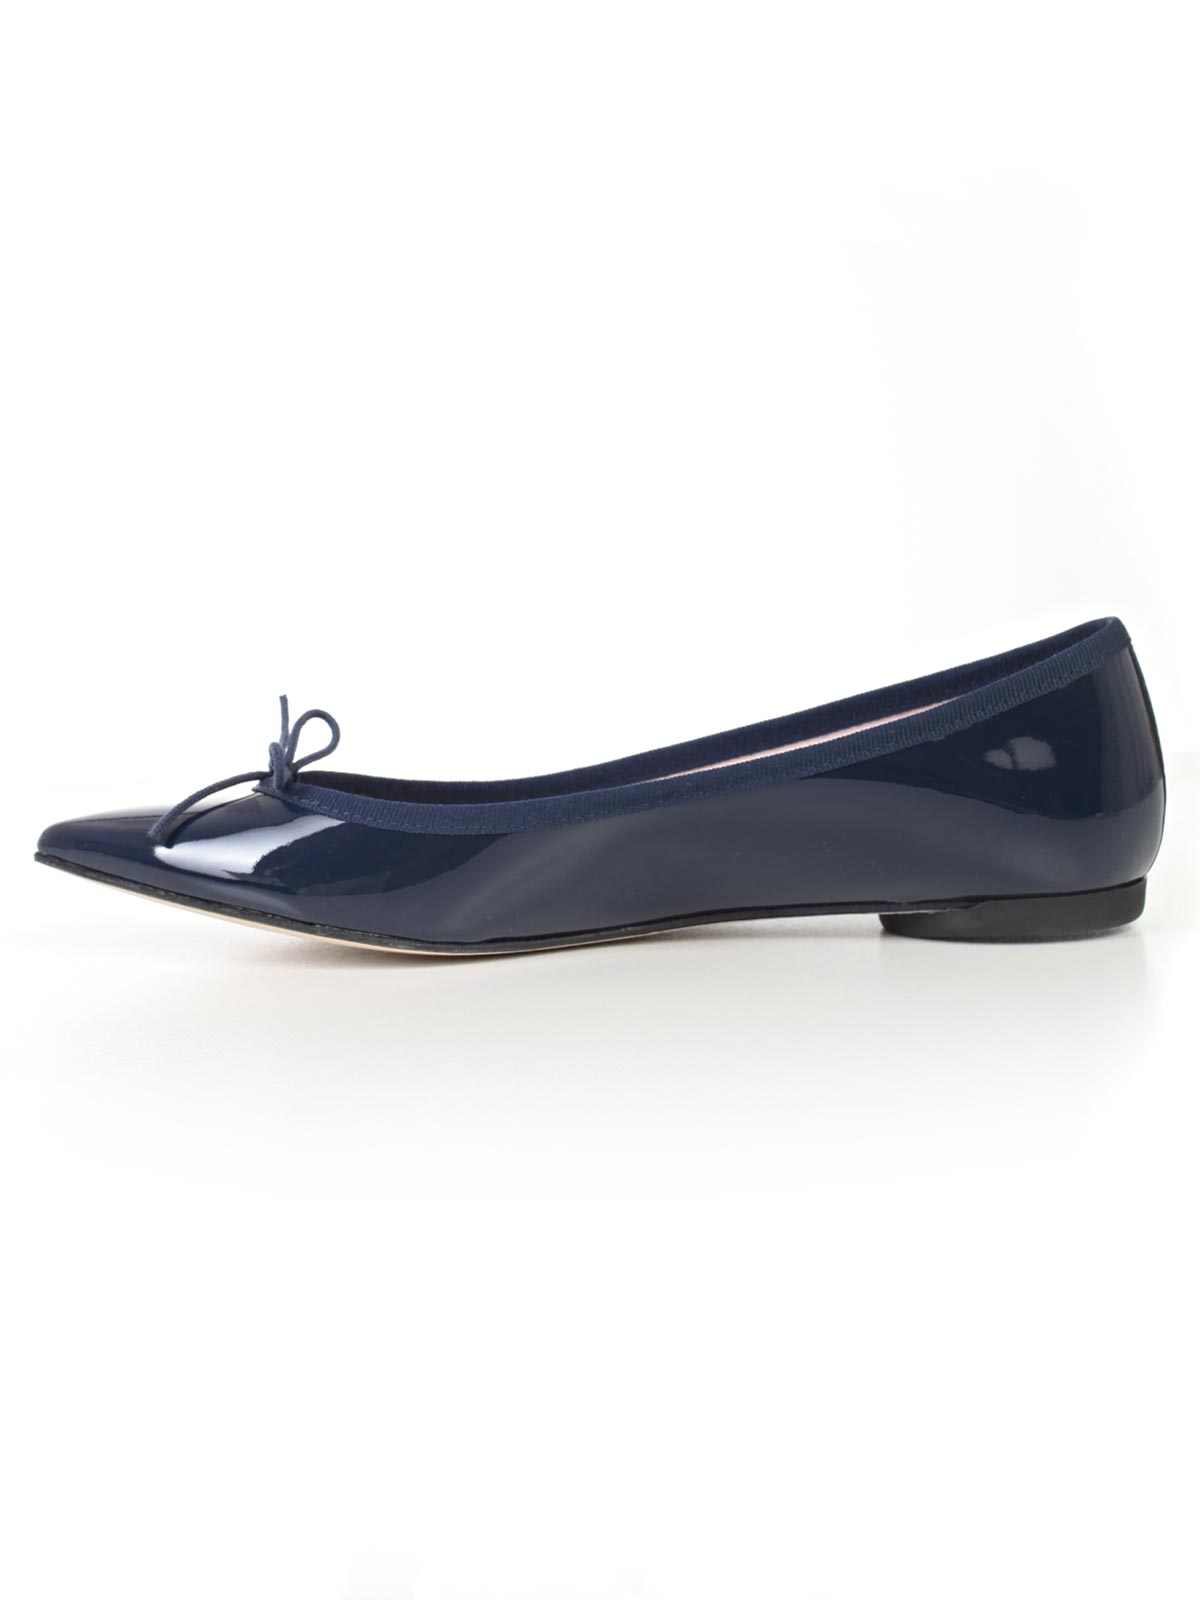 Picture of Repetto Shoes